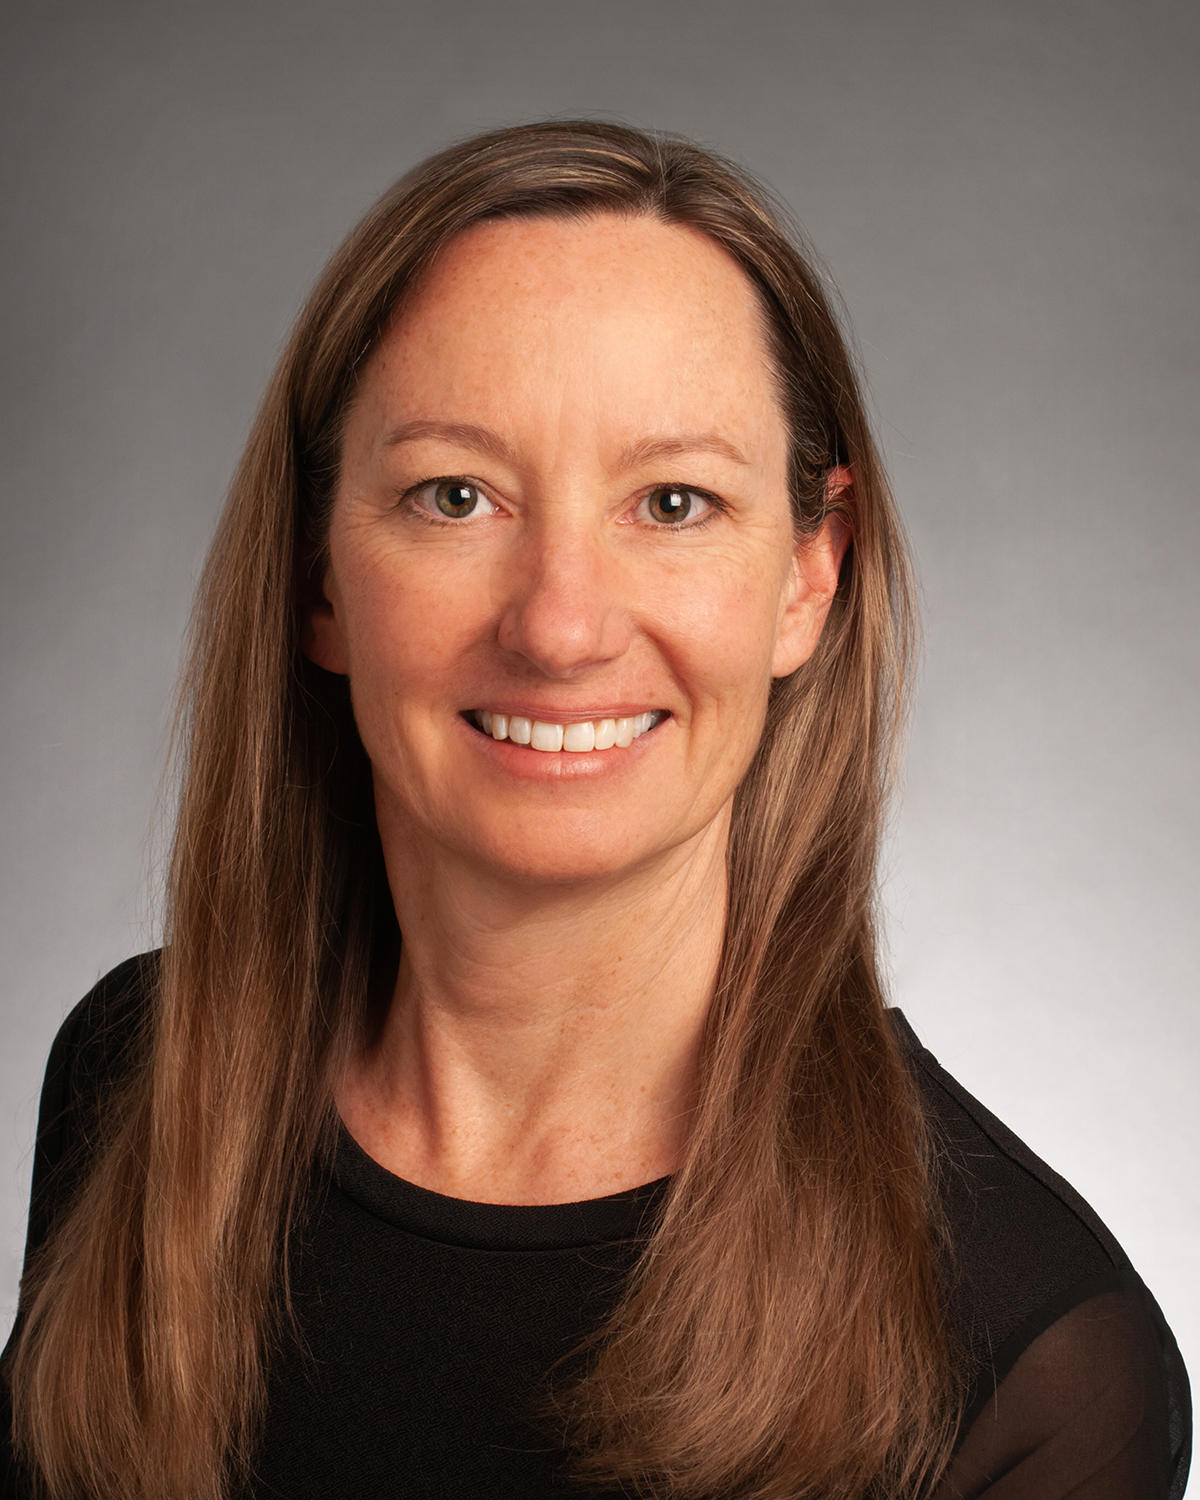 Diana Doumas, Counselor Education/Institute for the Study of Behavioral Health and Addiction, Distinguished Professor